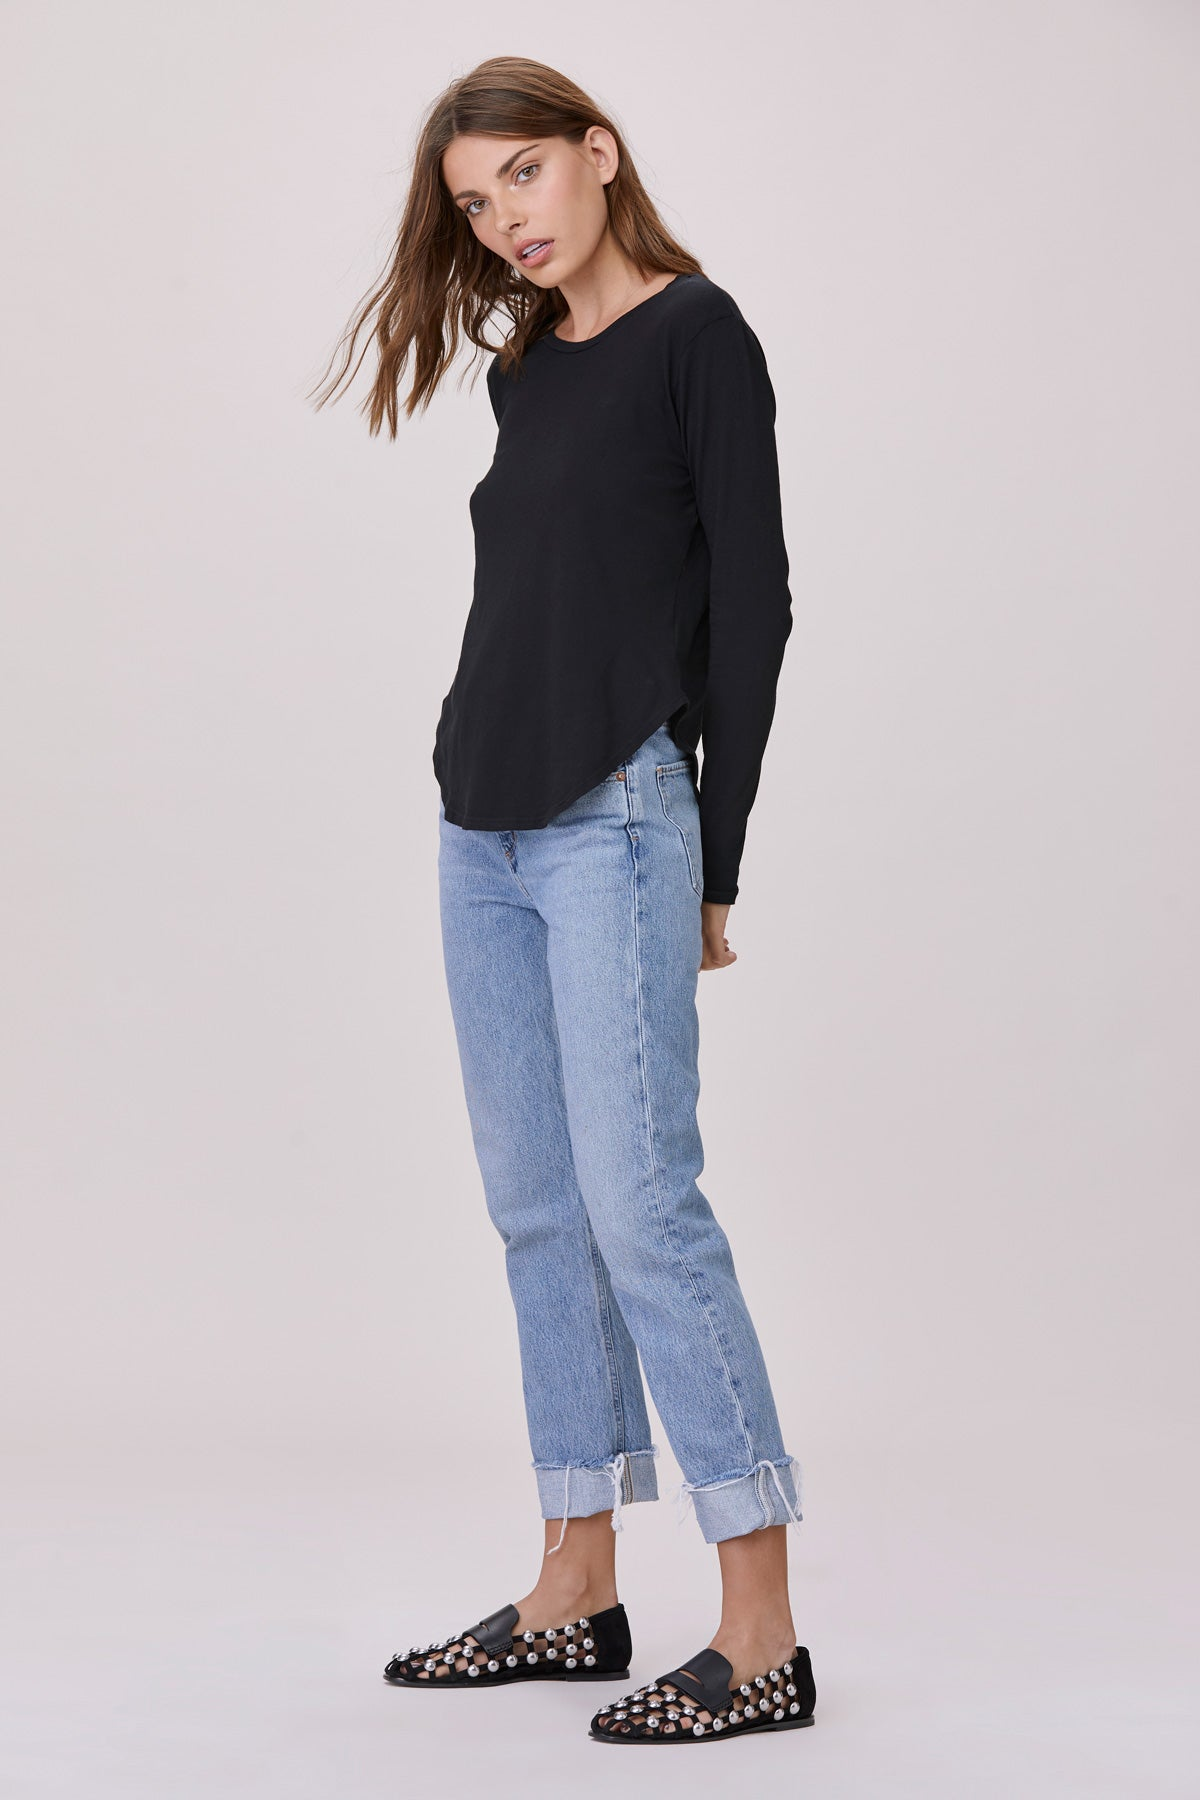 LNA Black Curved Crew Neck Long Sleeve Tee